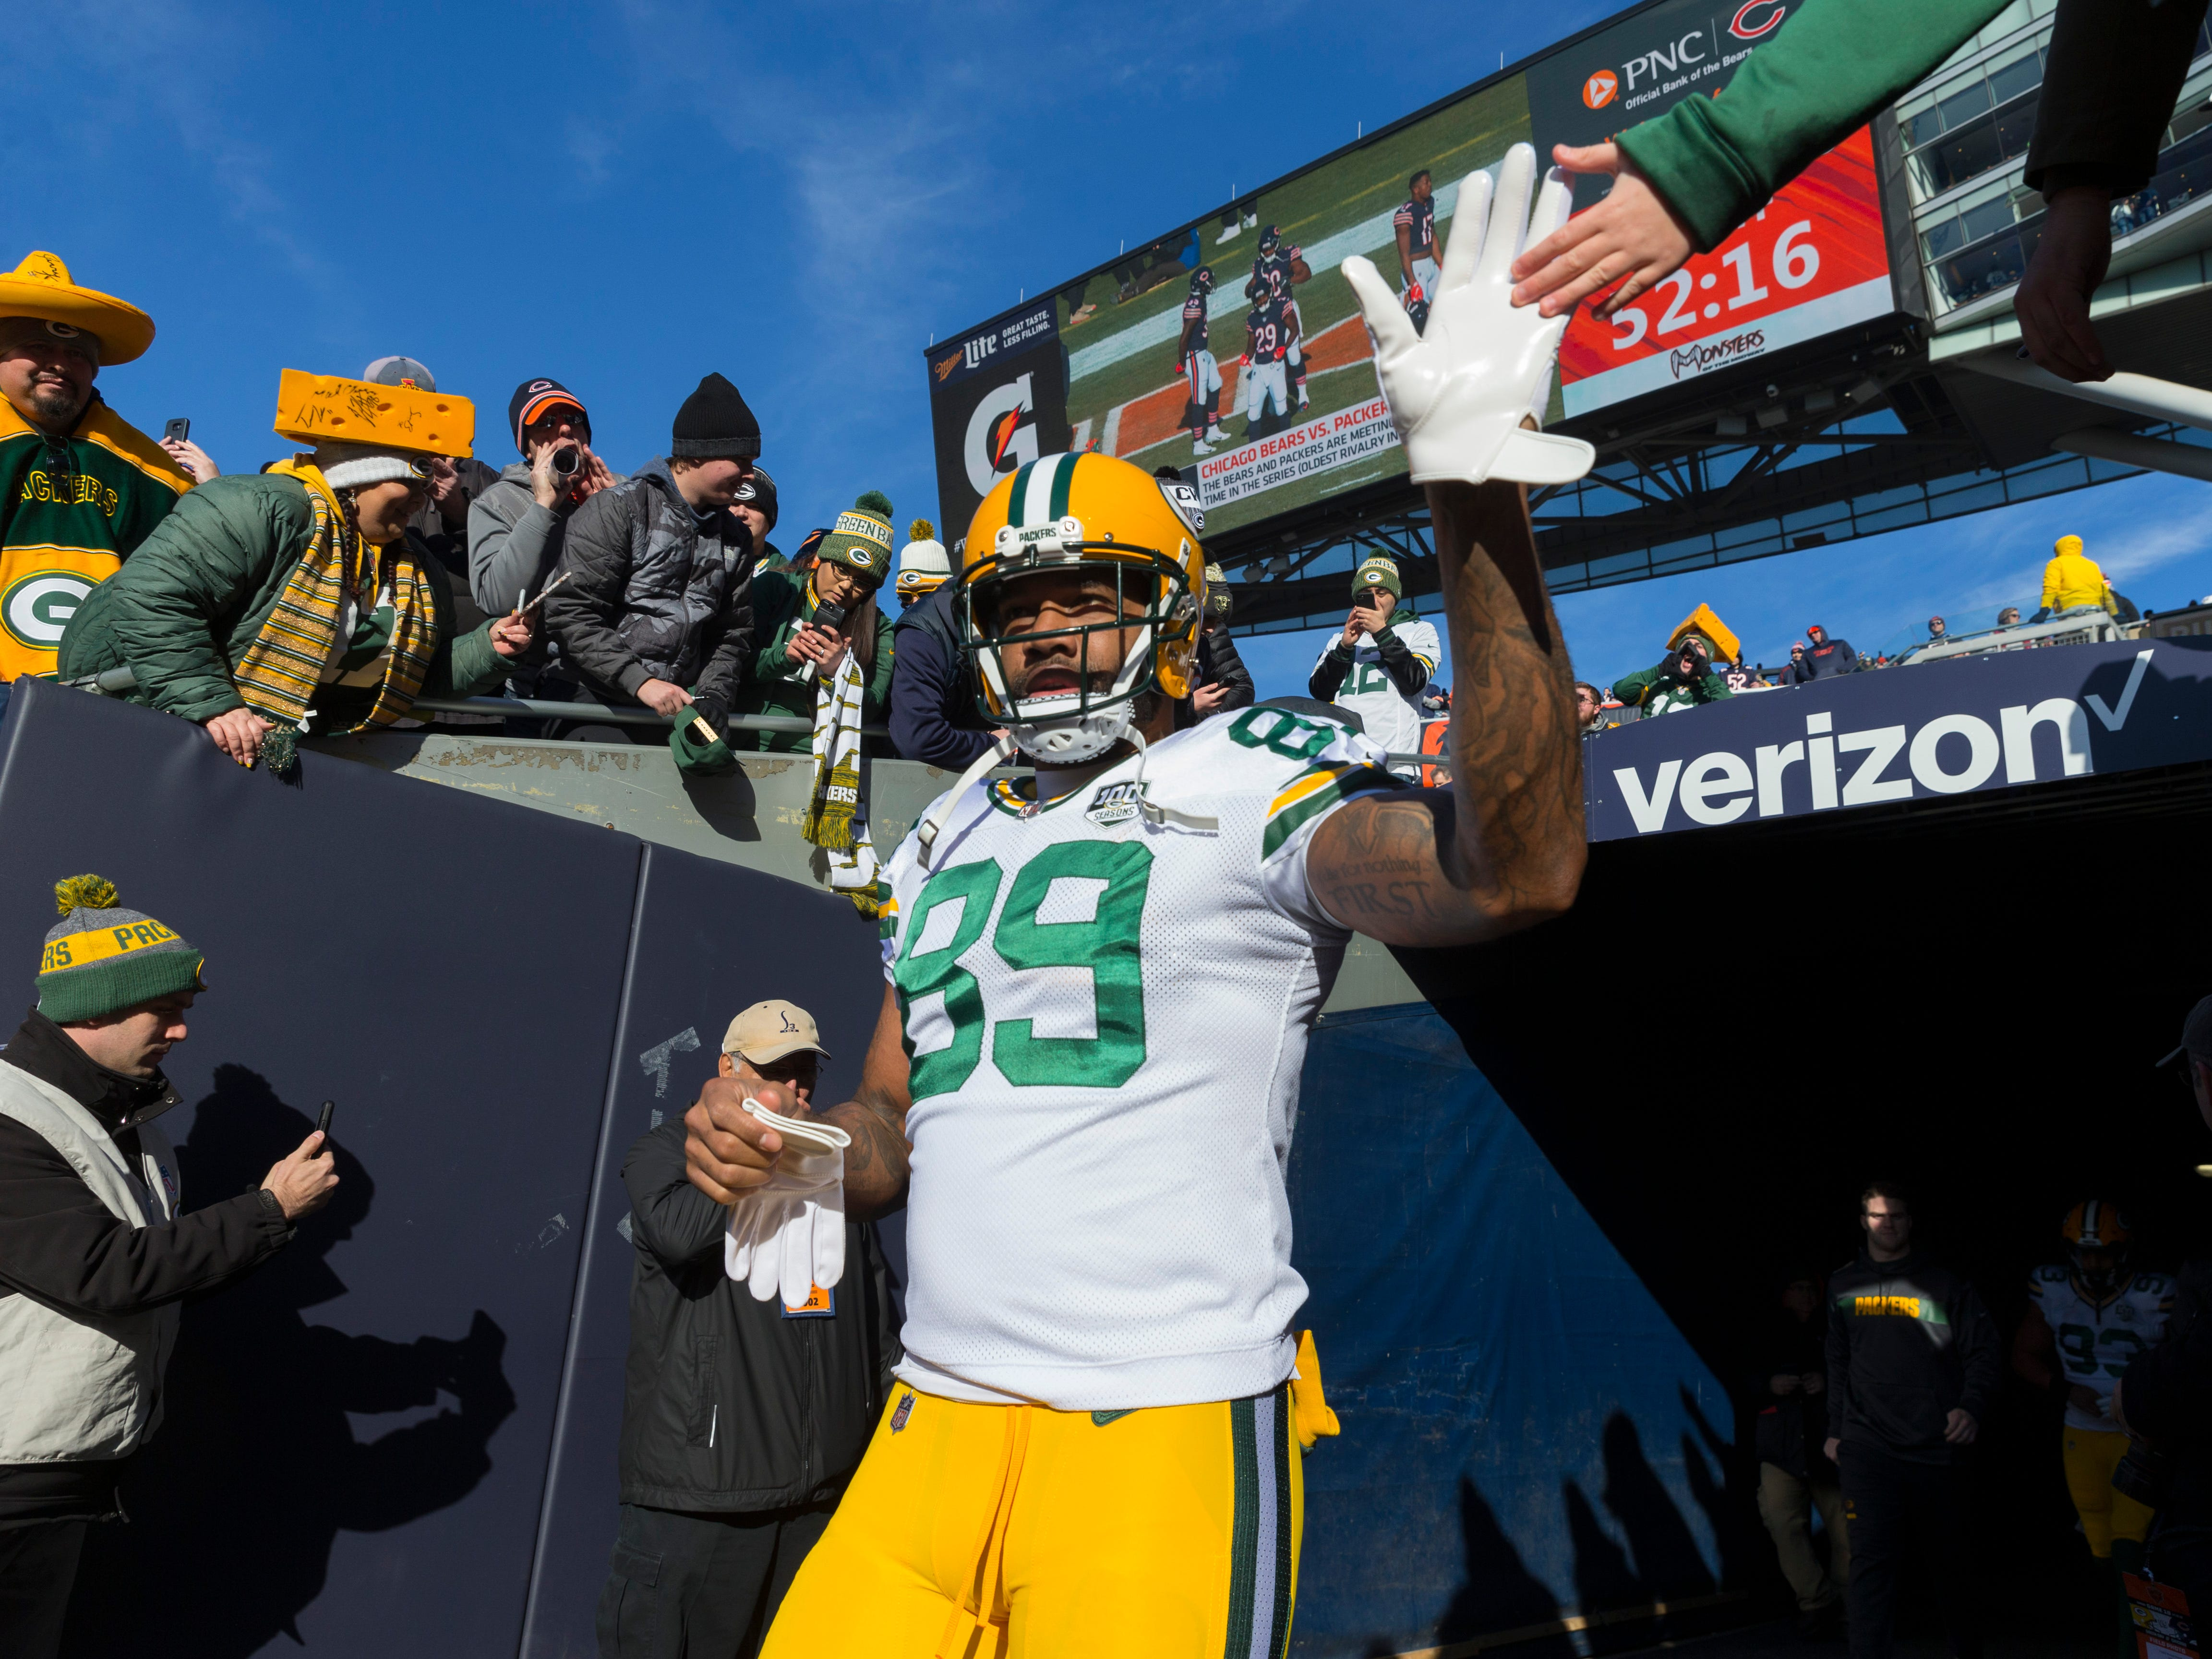 Green Bay Packers tight end Marcedes Lewis (89) greets a fan while taking to the field for warm ups  before their game against the Chicago Bears Sunday, December 25, 2018 at Soldier Field in Chicago, Ill.